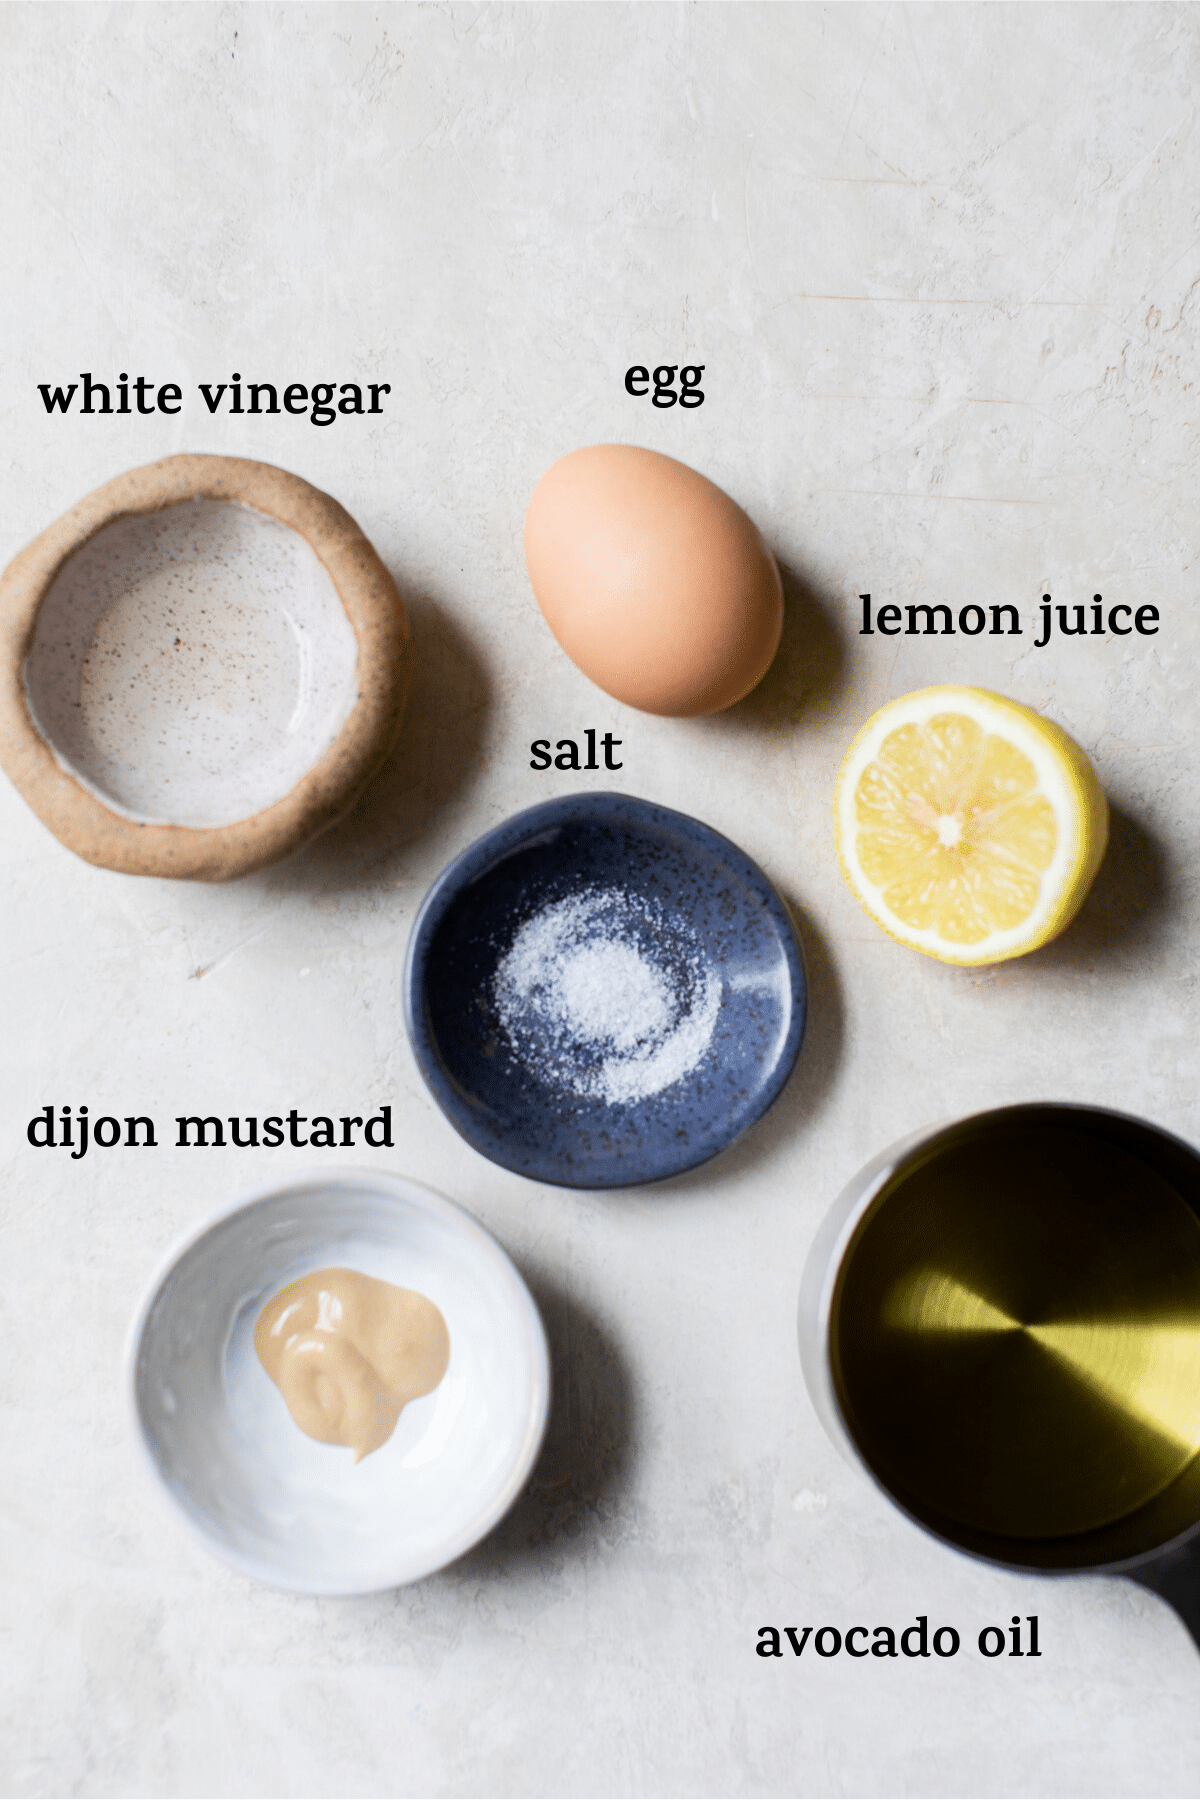 mayonnaise ingredients with text overlay